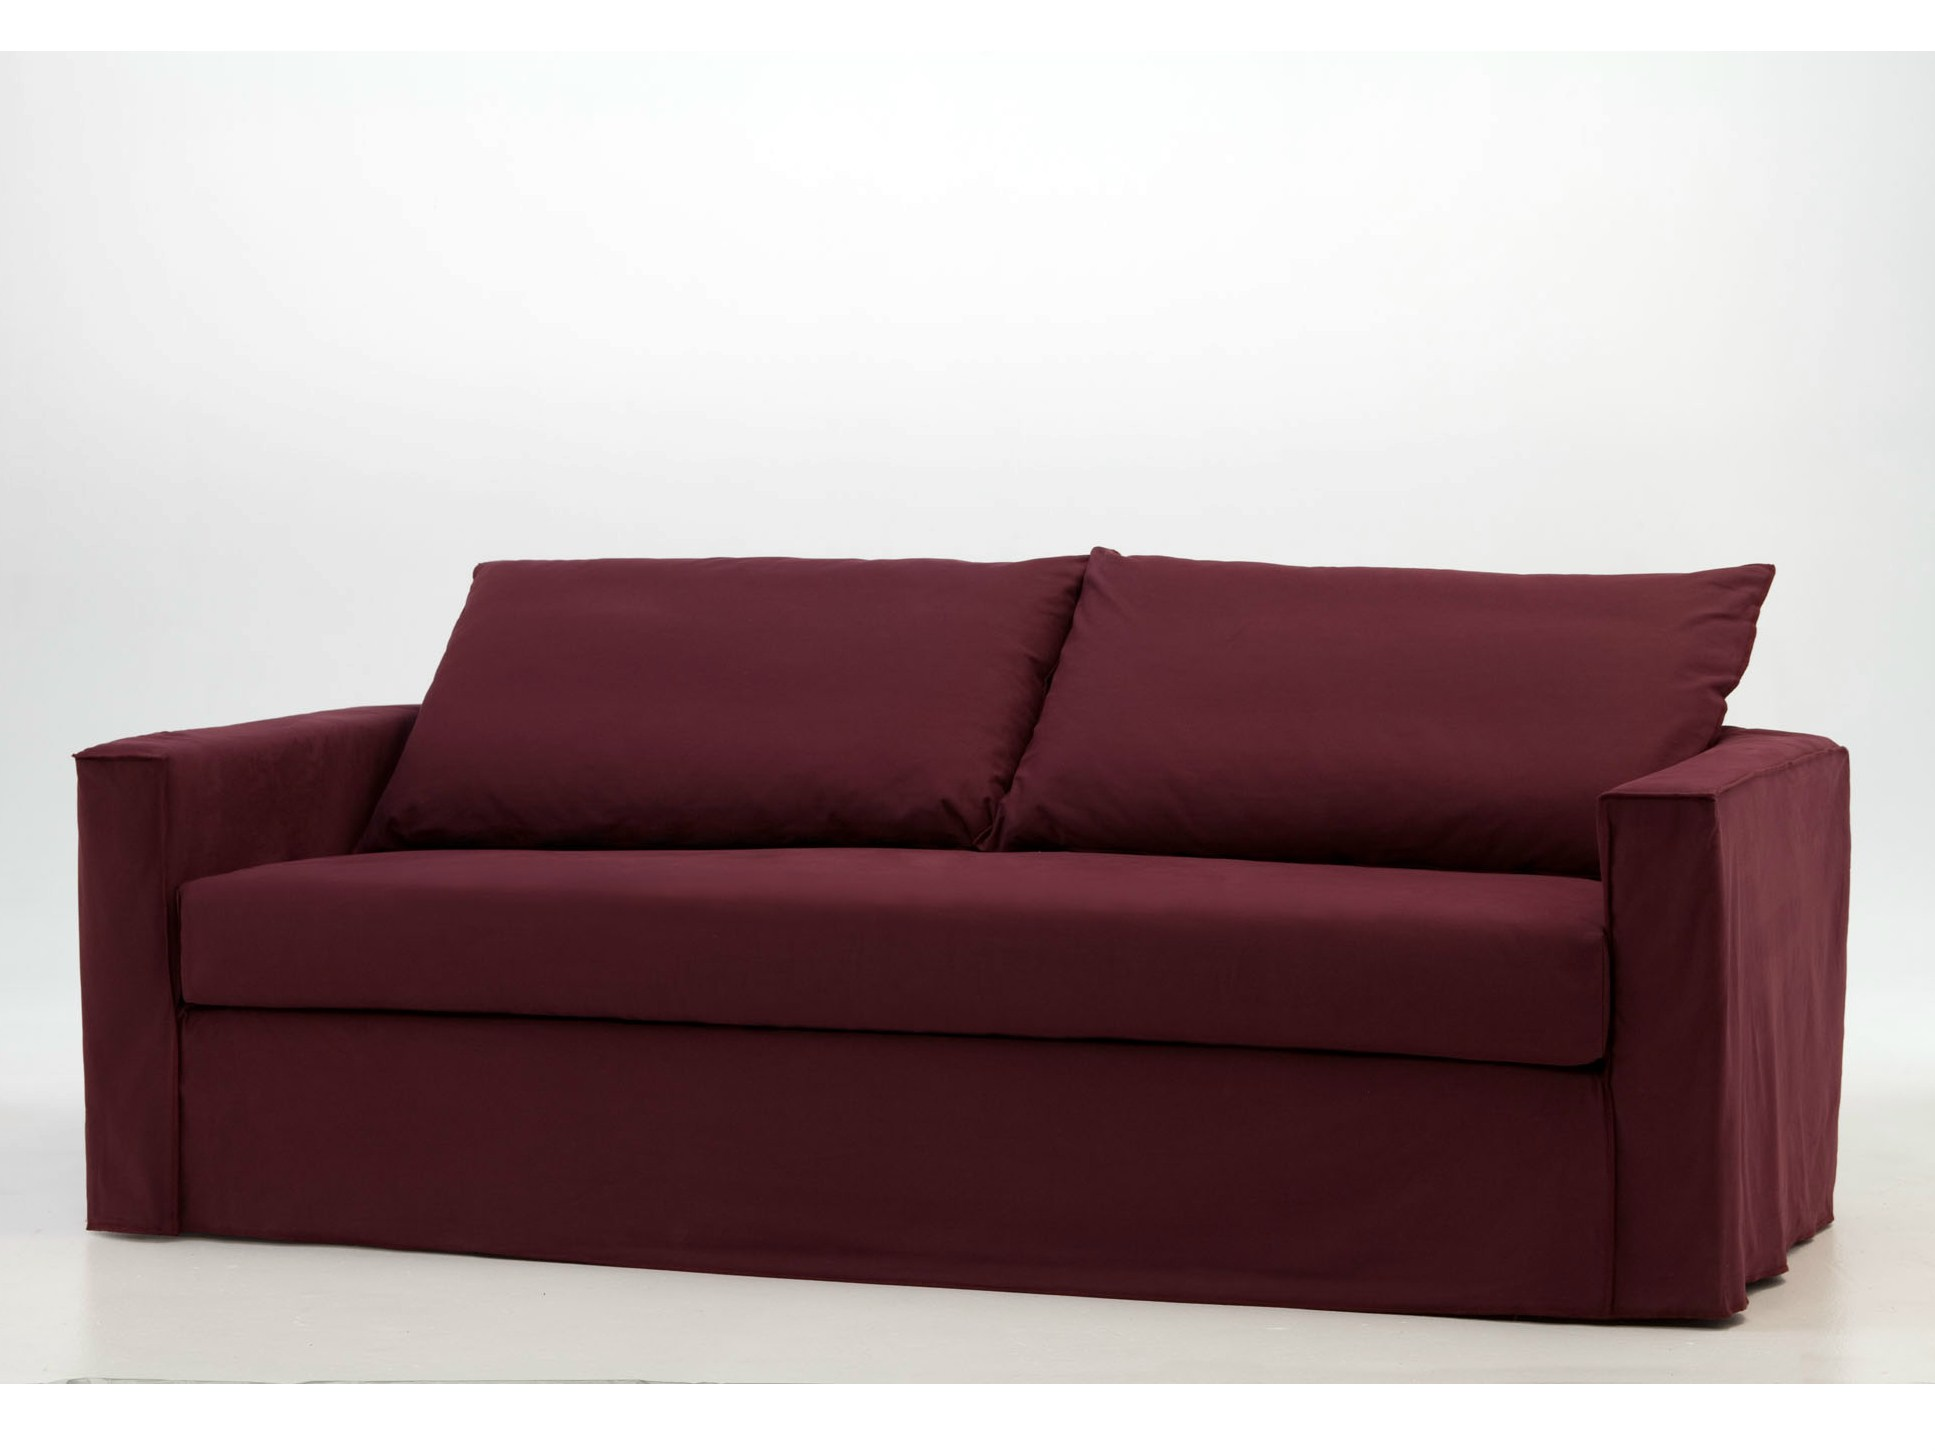 Sofa bed with removable cover brick 15 by gervasoni design for Sofa bed the brick